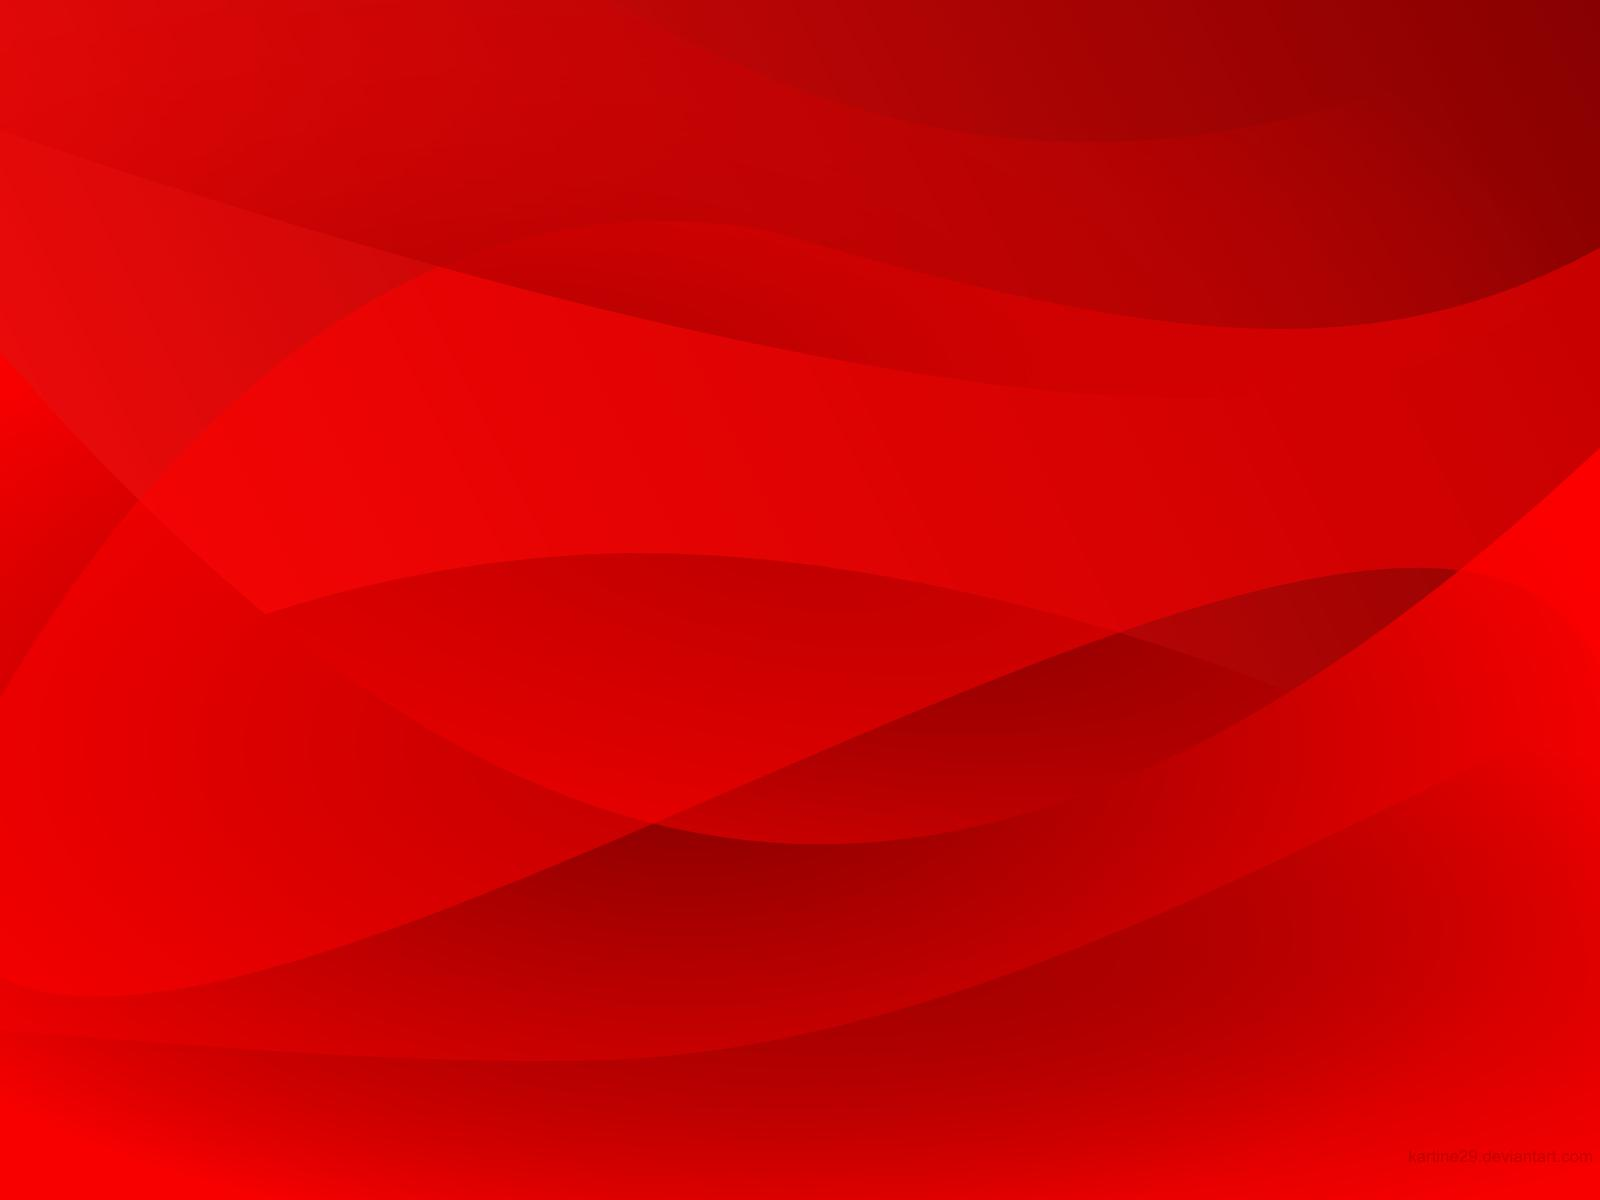 Red Abstract Wallpaper For Desktop Wallpaper